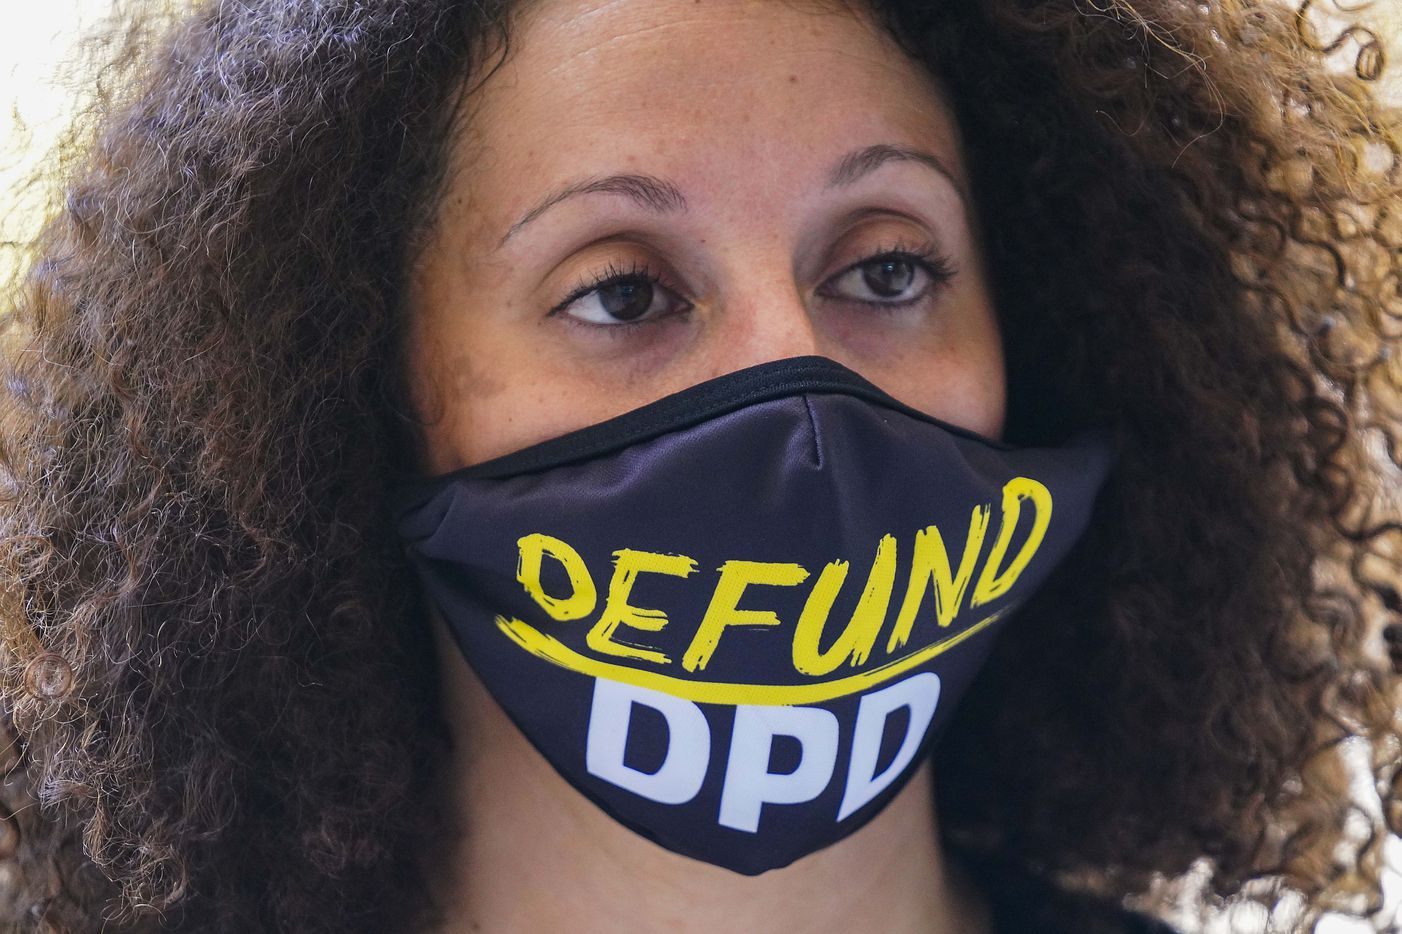 Sara Mokuria of Mothers Against Police Brutality wears a face mask reading 'Defund DPD' during a rally commemorating Juneteenth at Dallas City Hall on Friday, June 19, 2020.